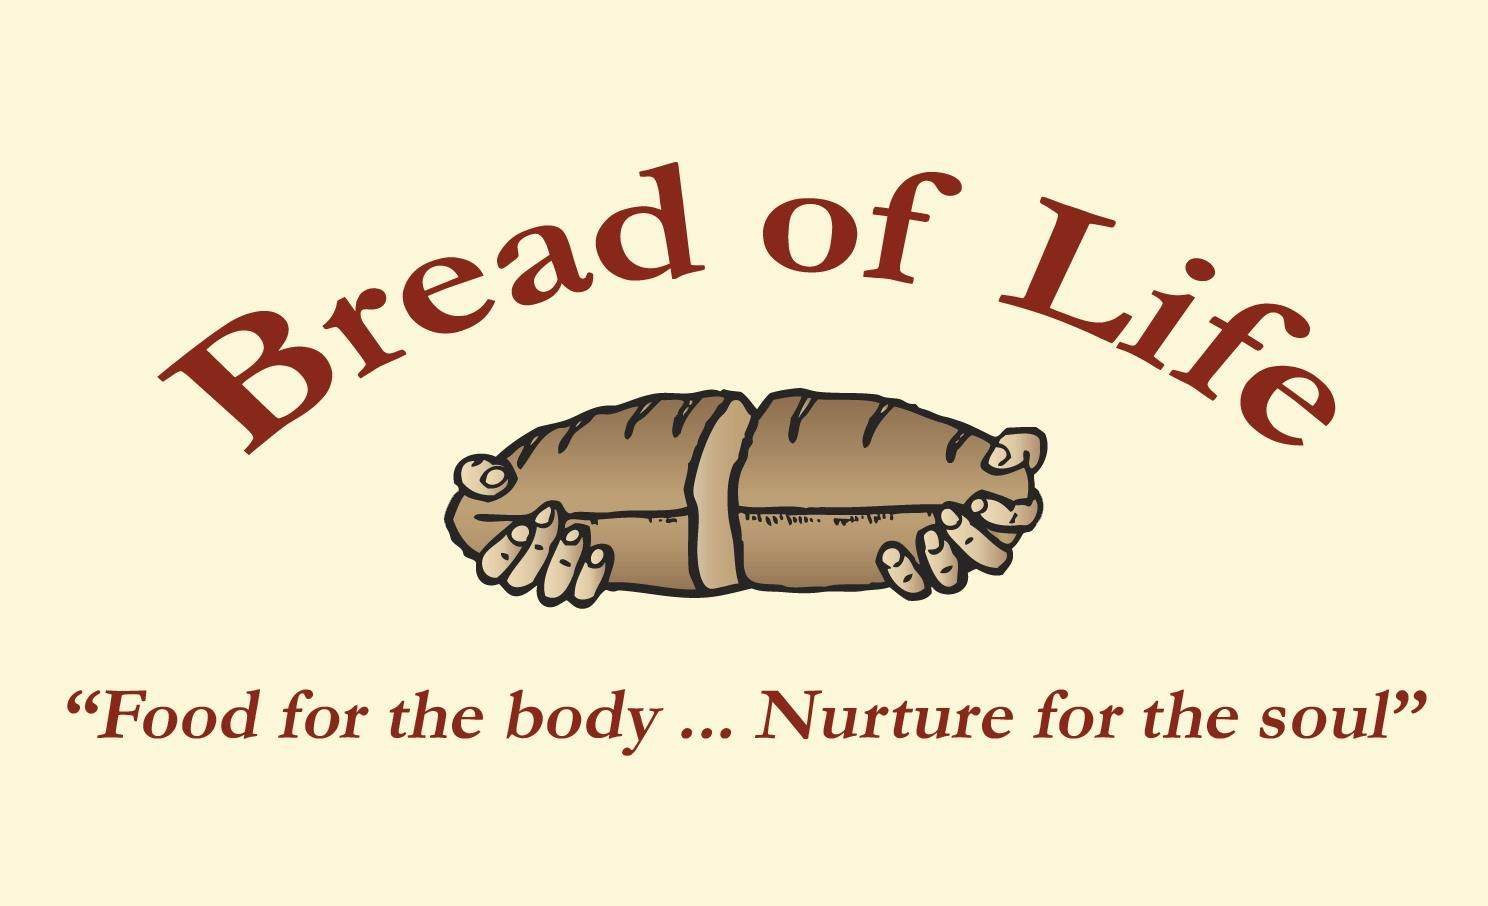 Bread of Life Food Pantry Malden